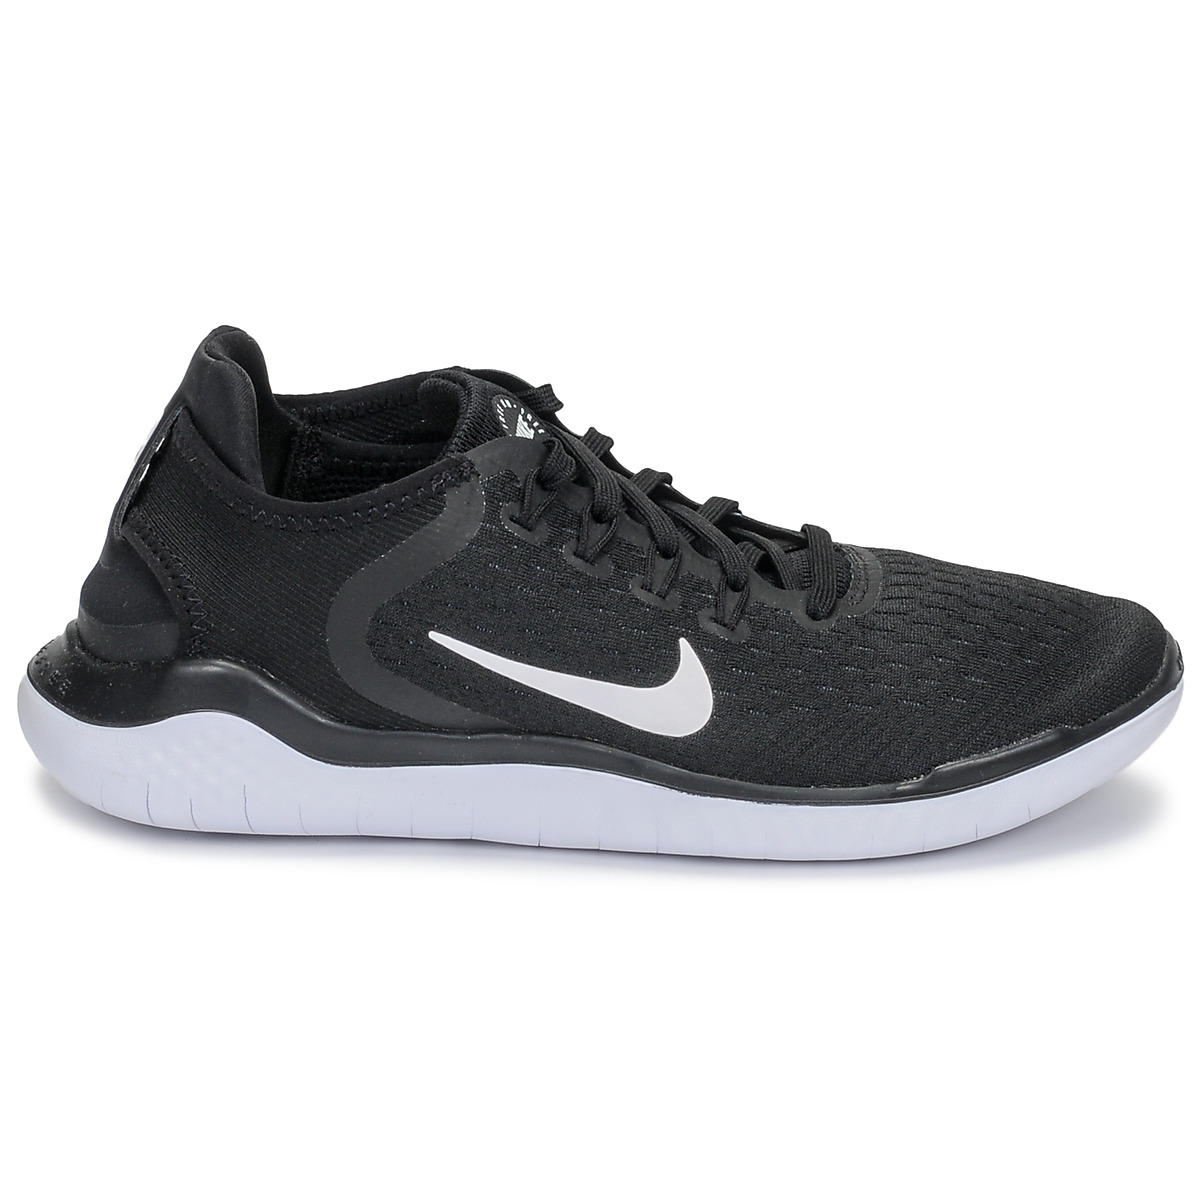 Chaussures 2018 Chaussures Rn Free Nike Nike vYbfg67y